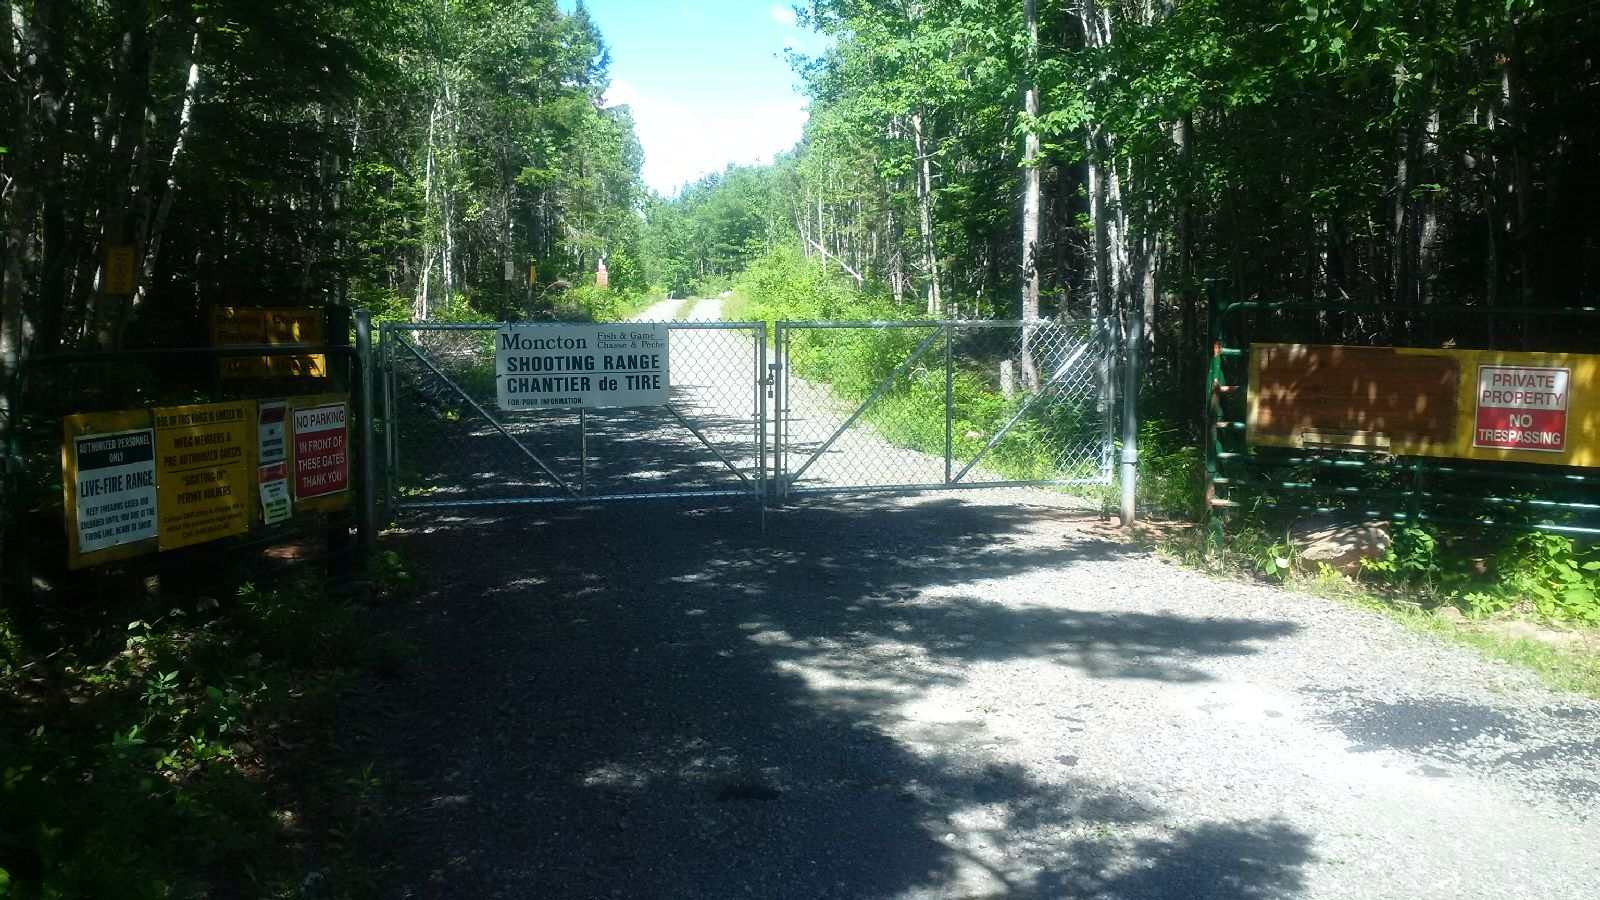 New Gate installed - Gate is always locked, members receive a gate code gain access.